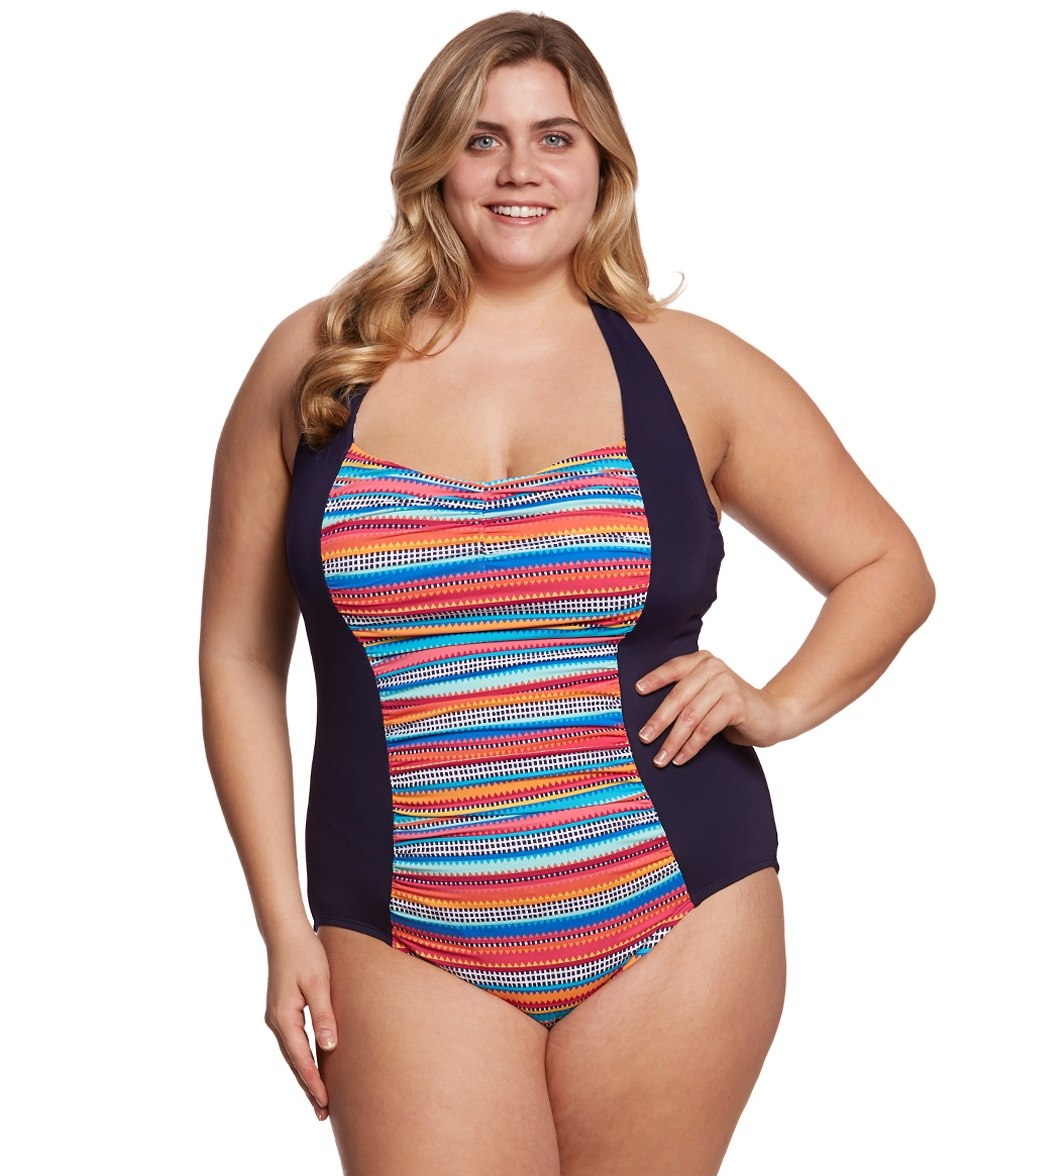 578c94b514c Anne Cole Signature Plus Size Triangle Stripe Halter One Piece Swimsuit at  SwimOutlet.com - Free Shipping